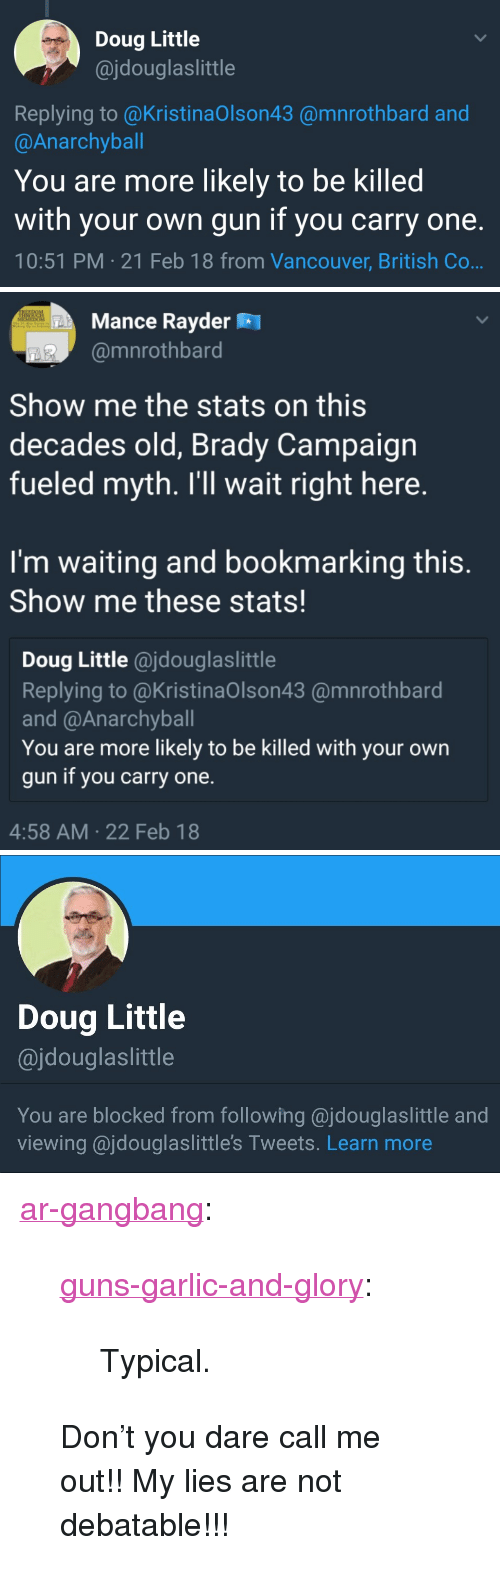 "Doug, Gangbang, and Guns: Doug Little  @jdouglaslittle  Replying to @KristinaOlson43 @mnrothbard and  @Anarchyball  You are more likely to be killed  with your own gun if you carry one.  10:51 PM 21 Feb 18 from Vancouver, British Co   Mance Rayder R  @mnrothbard  Show me the stats on this  decades old, Brady Campaign  fueled myth. I'll wait right here.  I'm waiting and bookmarking this.  Show me these stats!  Doug Little @jdouglaslittle  Replying to @KristinaOlson43 @mnrothbard  and @Anarchyball  You are more likely to be killed with your own  gun if you carry one.  4:58 AM 22 Feb 18   Doug Little  @jdouglaslittle  You are blocked from following @jdouglaslittle and  viewing ajdouglaslittle's Tweets. Learn more <p><a href=""https://ar-gangbang.tumblr.com/post/171207663626/guns-garlic-and-glory-typical-dont-you"" class=""tumblr_blog"">ar-gangbang</a>:</p>  <blockquote><p><a href=""https://guns-garlic-and-glory.tumblr.com/post/171207497923/typical"" class=""tumblr_blog"">guns-garlic-and-glory</a>:</p>  <blockquote><p>Typical.  </p></blockquote>  <p>Don't you dare call me out!! My lies are not debatable!!! </p></blockquote>"